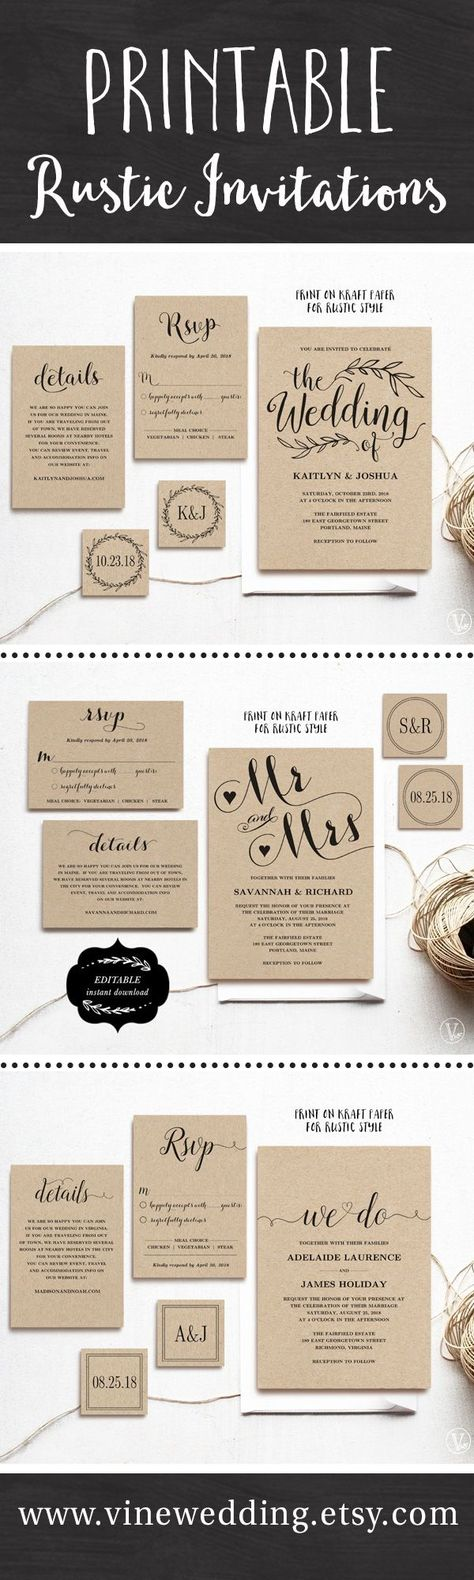 are labels on wedding invitations tacky%0A     best Design Inspiration  Wedding Invites images on Pinterest    Invitation cards  Invites wedding and Bridal invitations